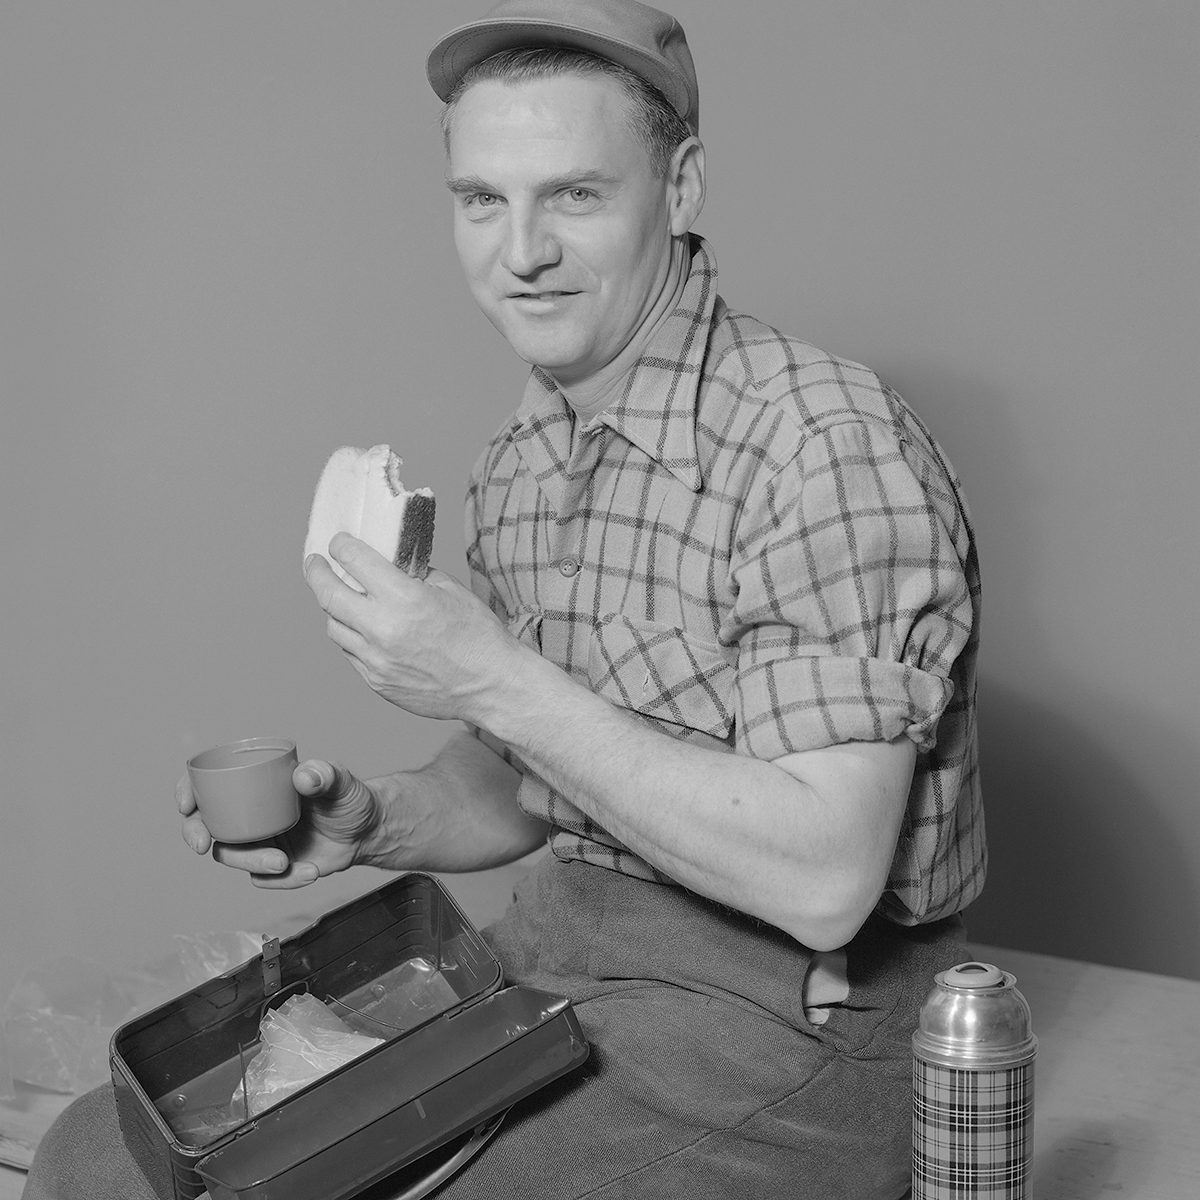 Portrait Of Man Eating Bread Slice. (Photo by Lambert/Getty Images)